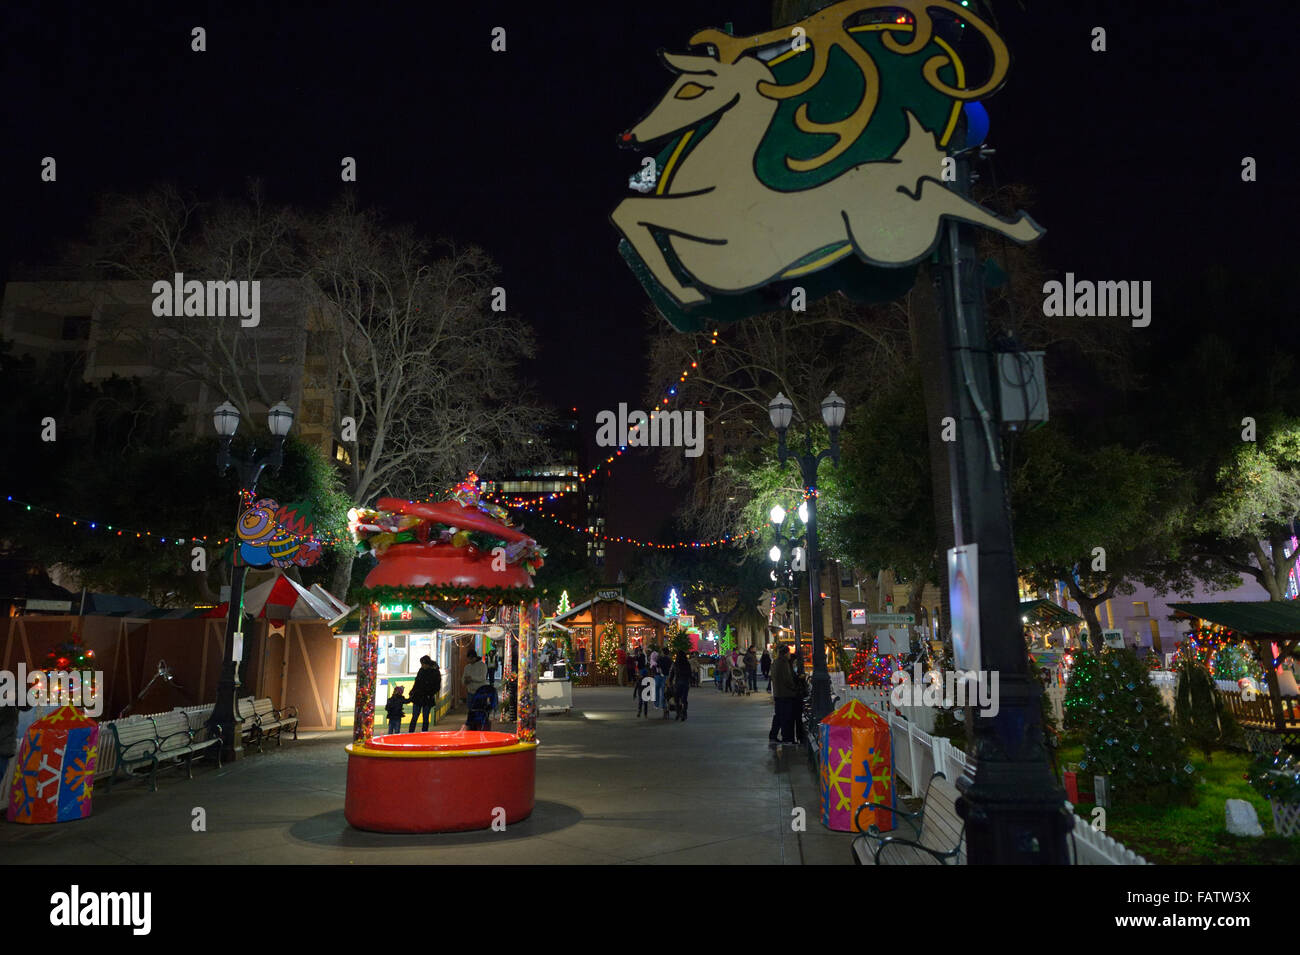 Christmas In The Park San Jose.Christmas In The Park San Jose Ca Stock Photo 92744958 Alamy